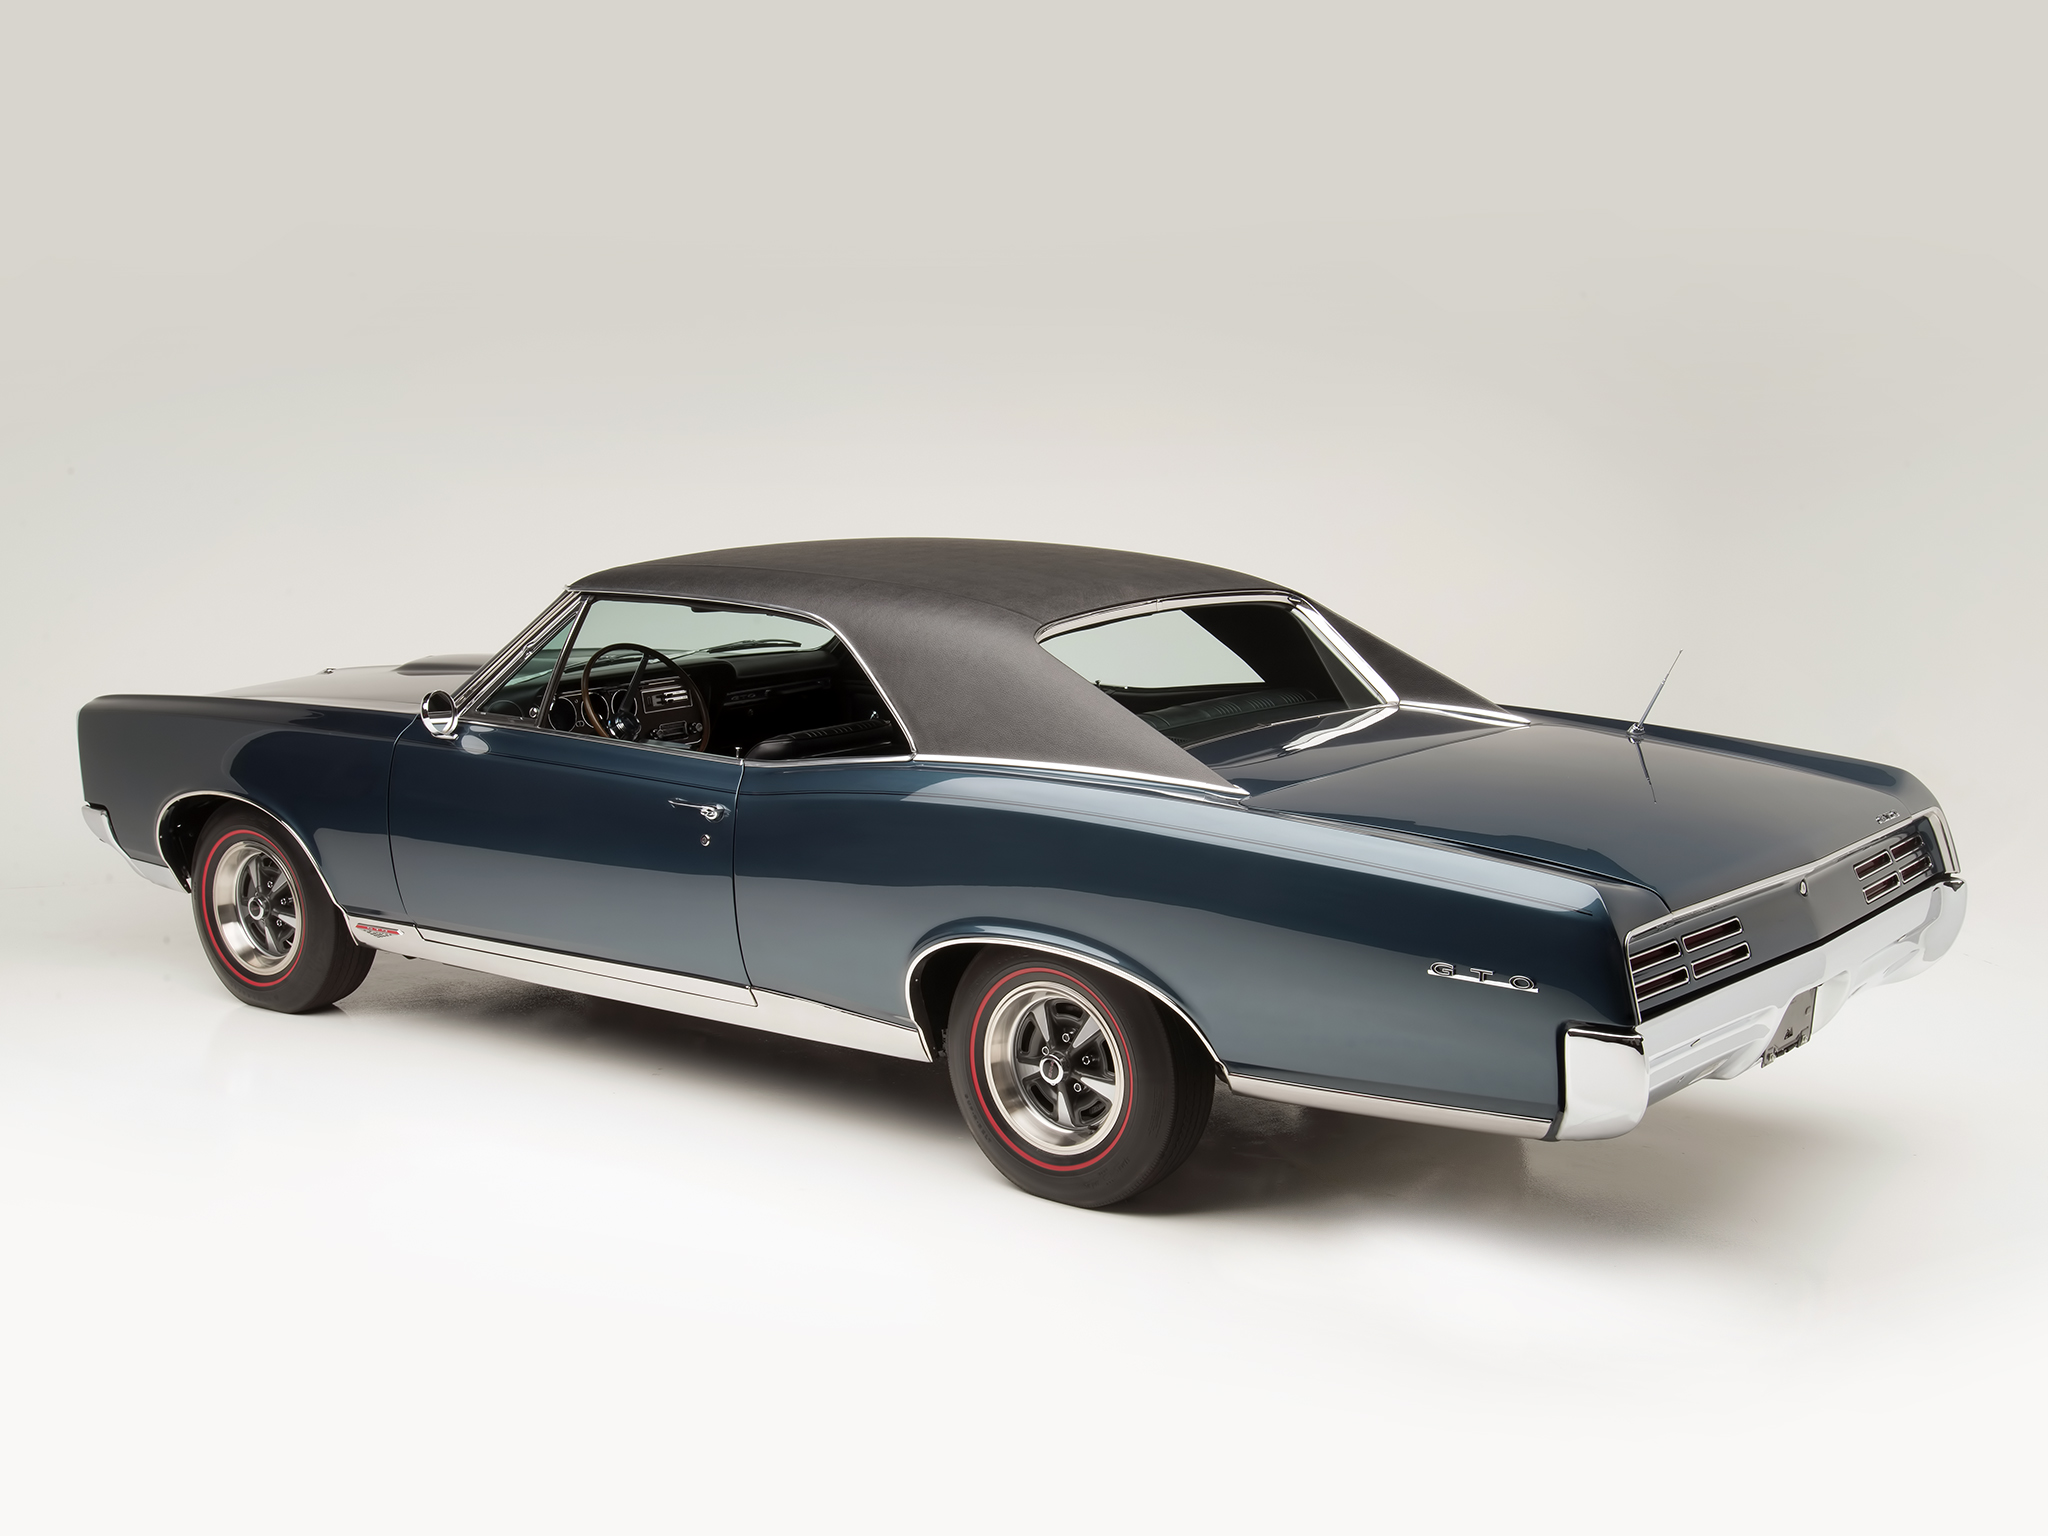 Classic Muscle Cars >> 1967 Pontiac Tempest GTO Hardtop Coupe muscle classic v wallpaper | 2048x1536 | 206737 | WallpaperUP